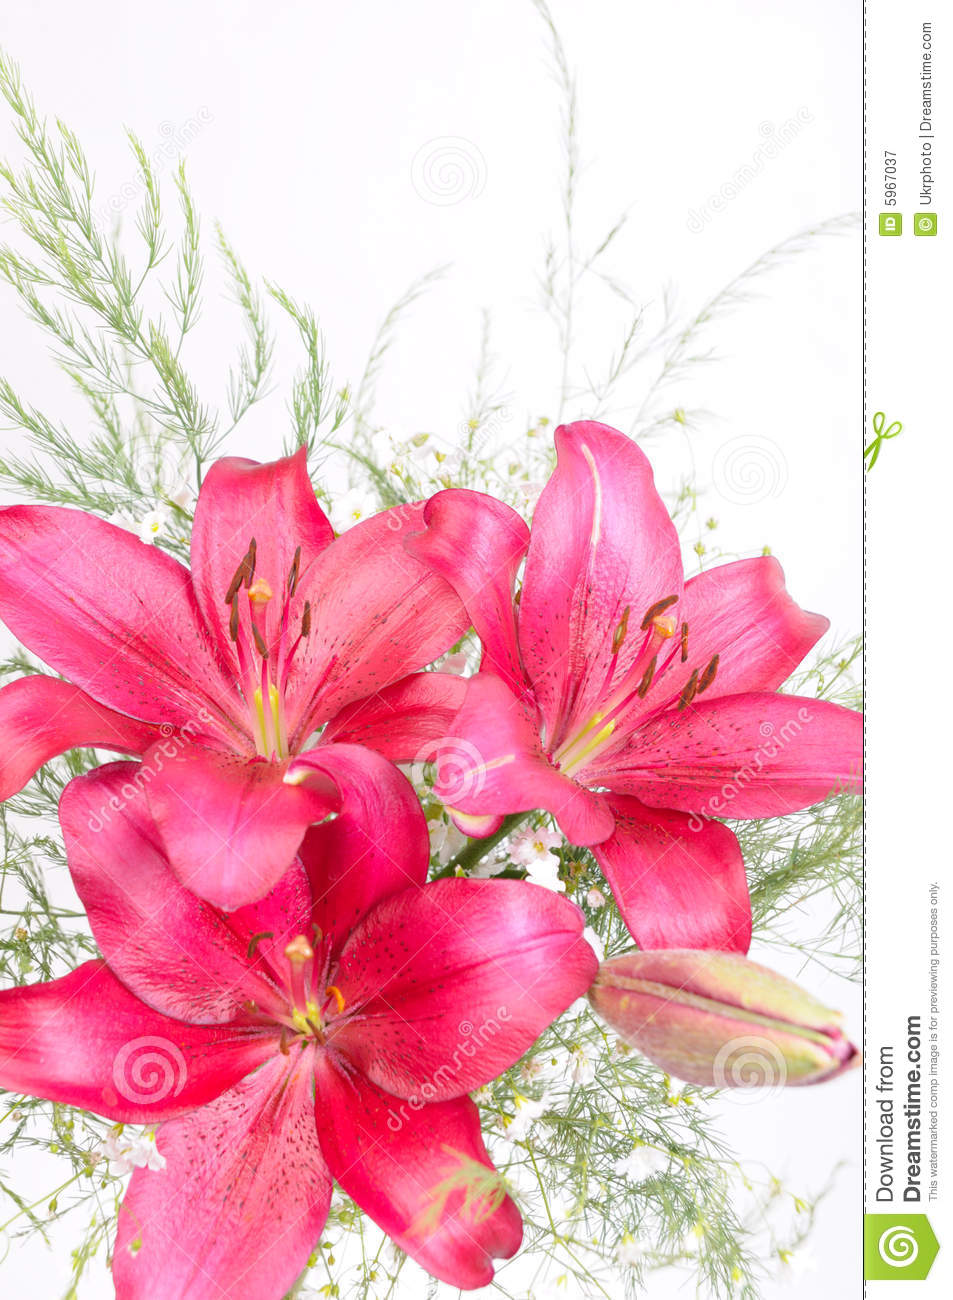 Bouquet of lily flowers stock image image of summer color 5967037 bouquet of lily flowers izmirmasajfo Gallery